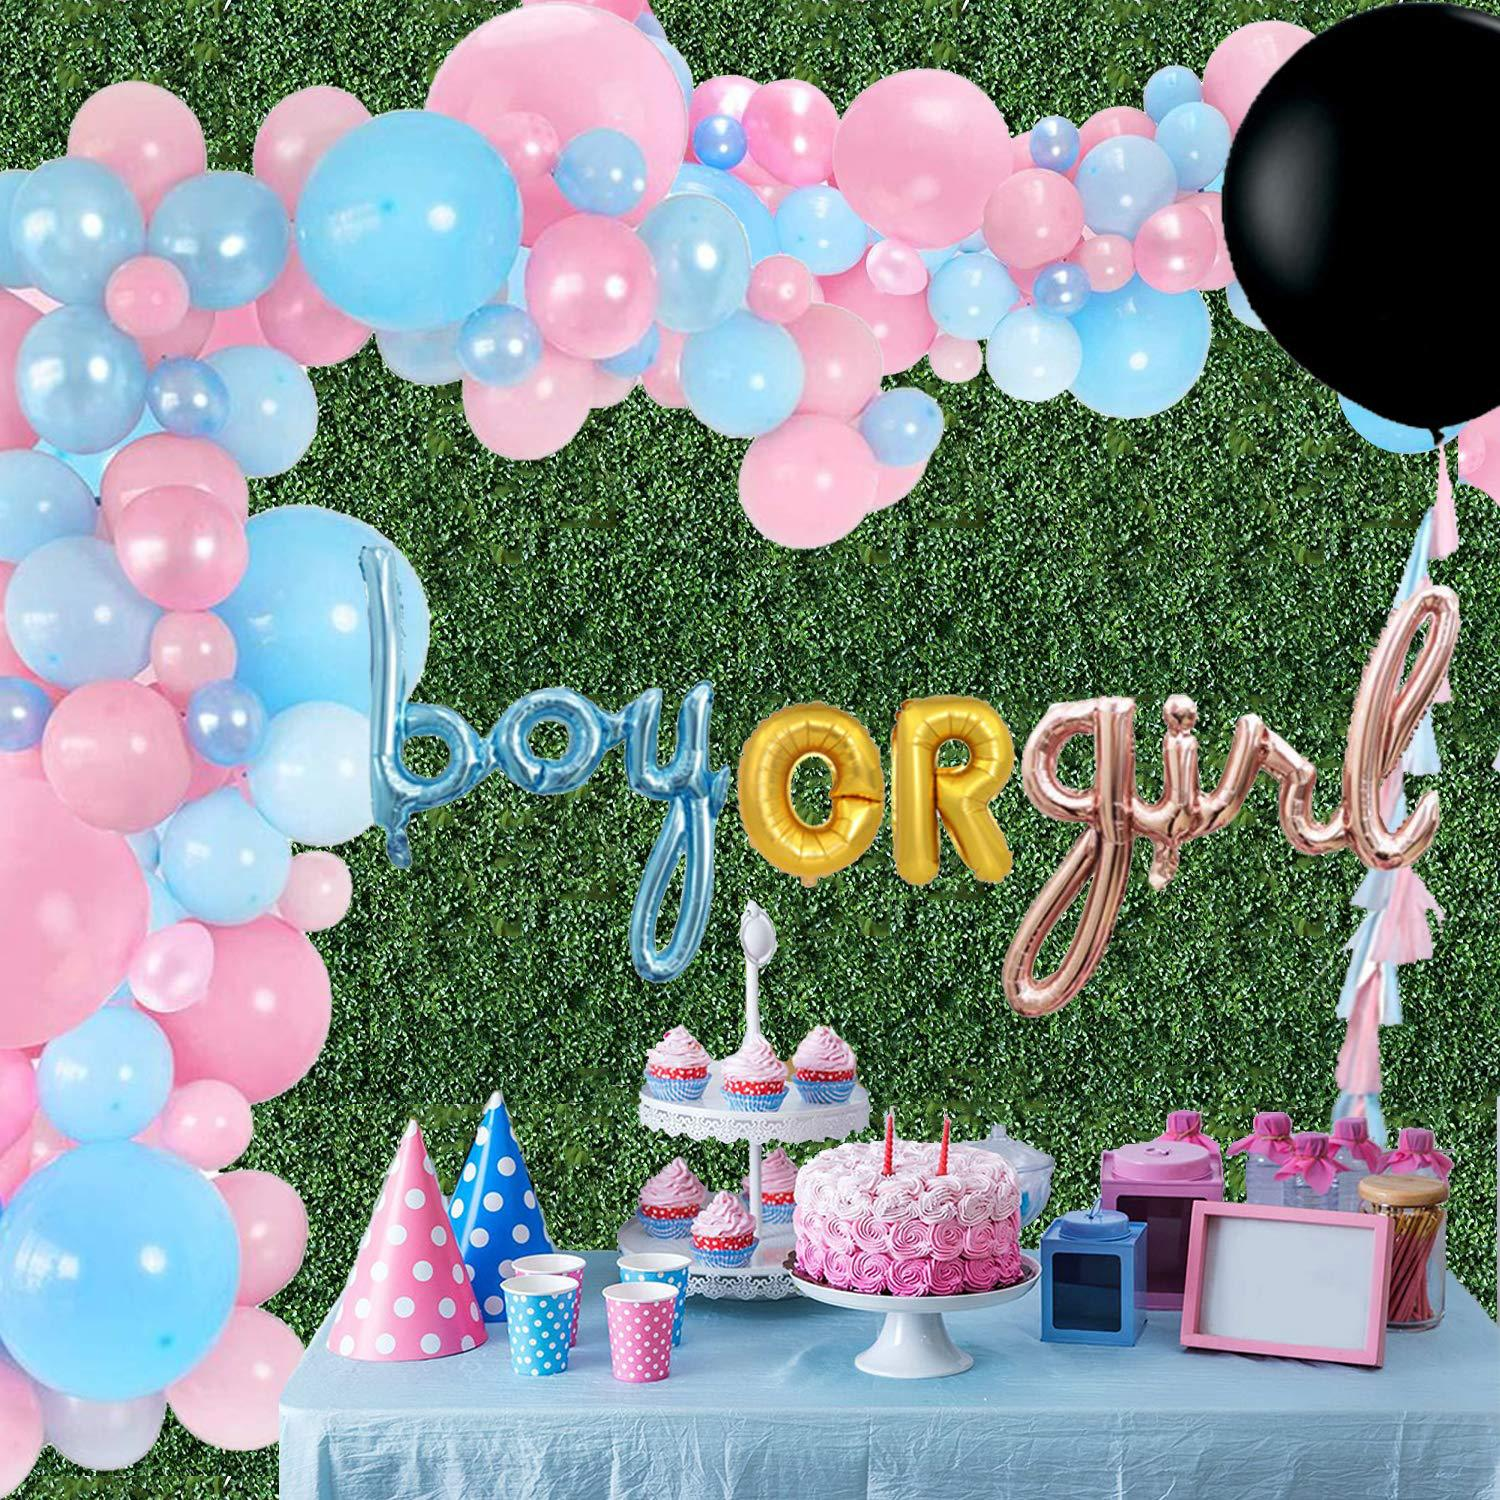 36inch Black Balloon Baby Gender Reveal Party Supplies Hanging Garland Baby Shower Boy Or Girl Foil Balloon Decorations Suit